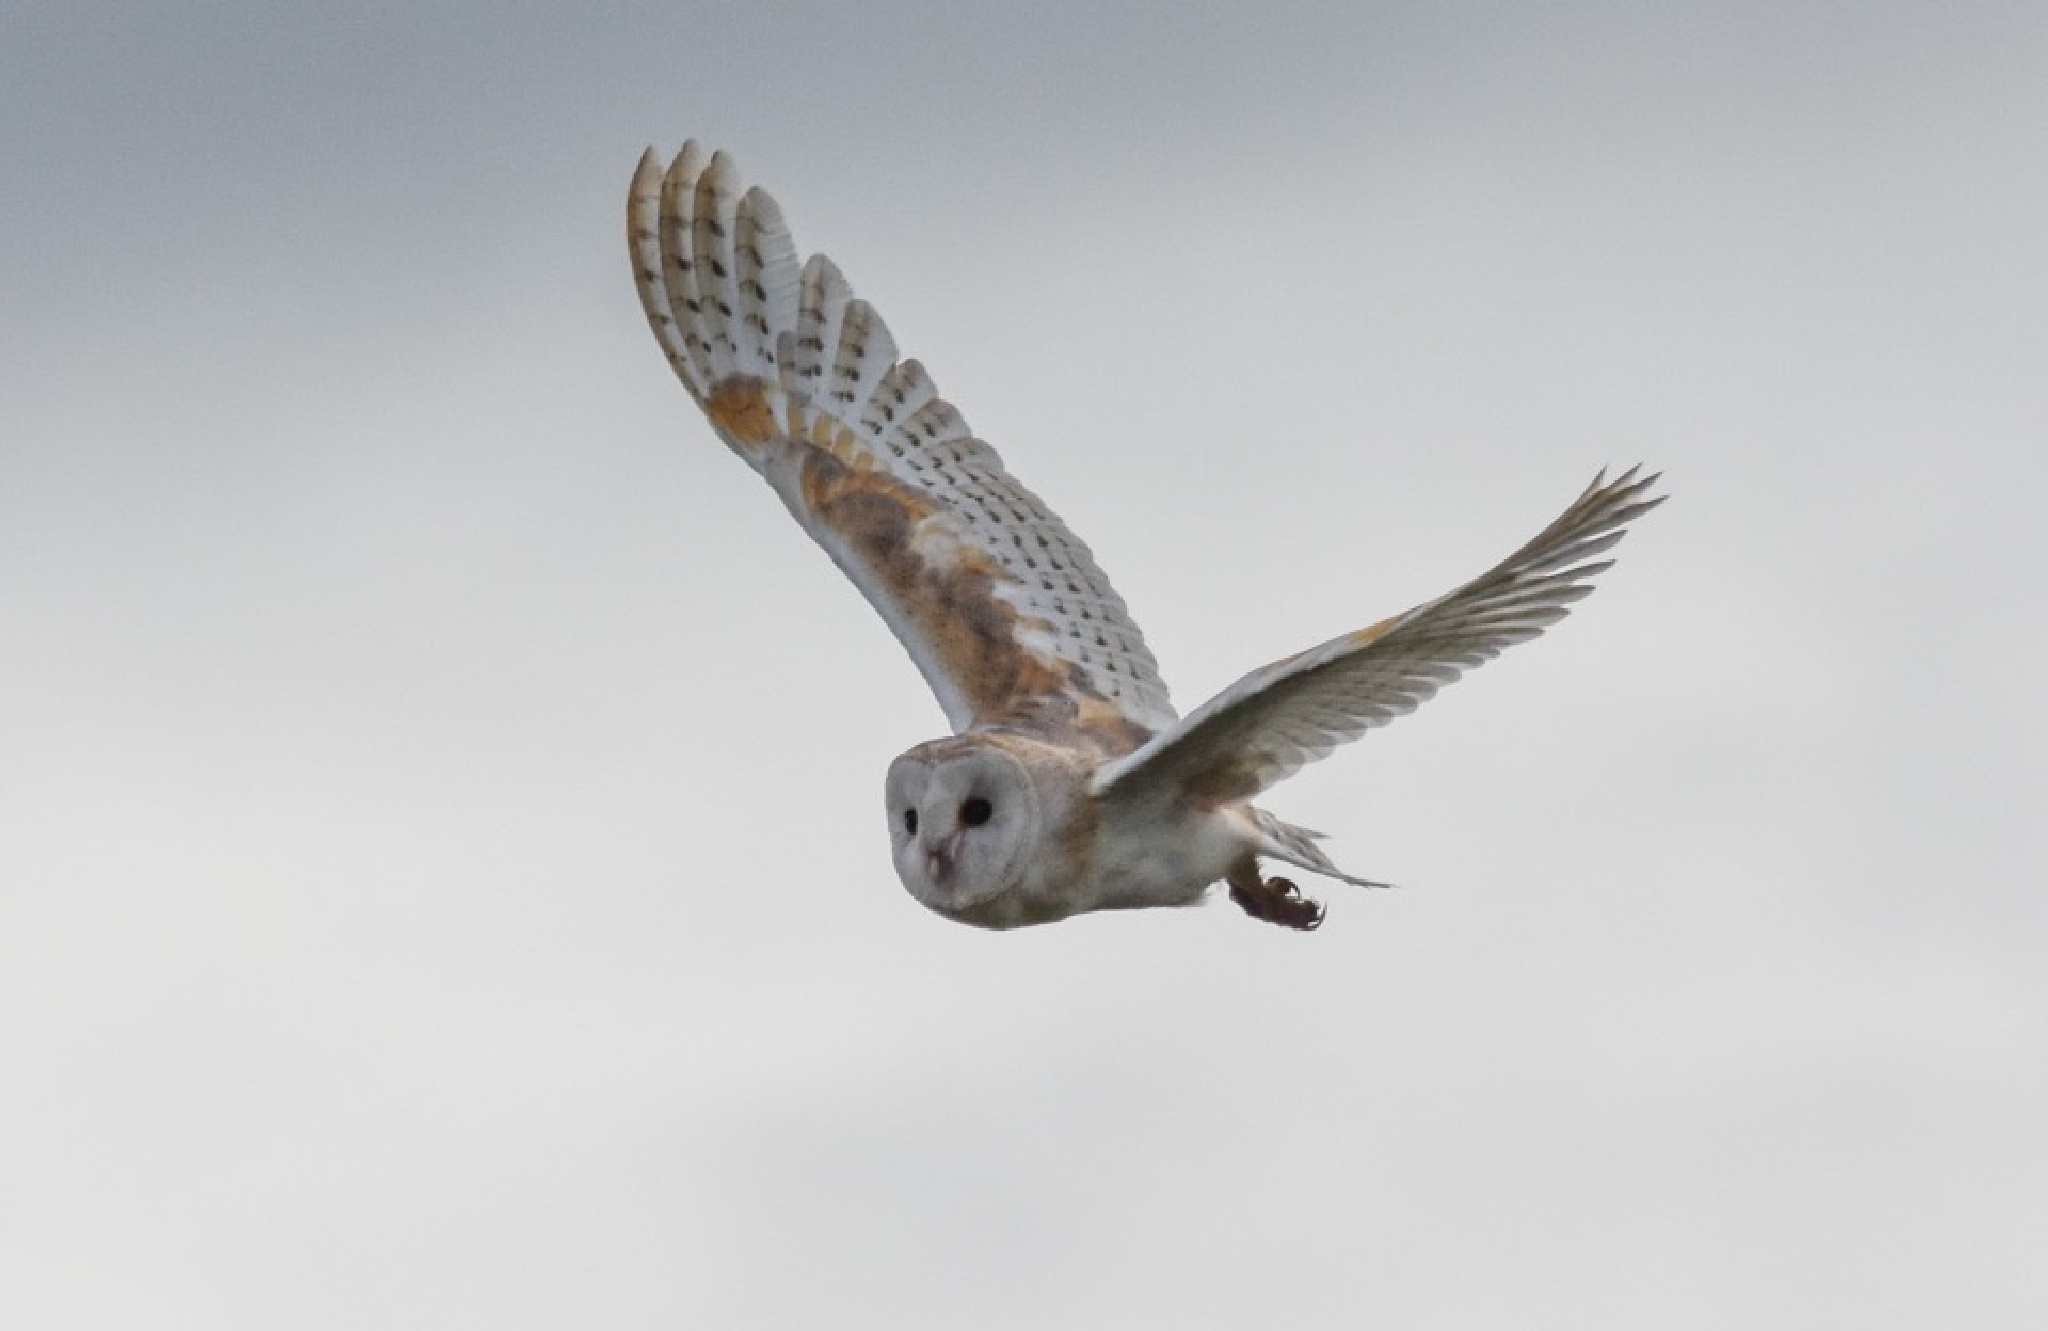 Barn Owl by gazclarke1974